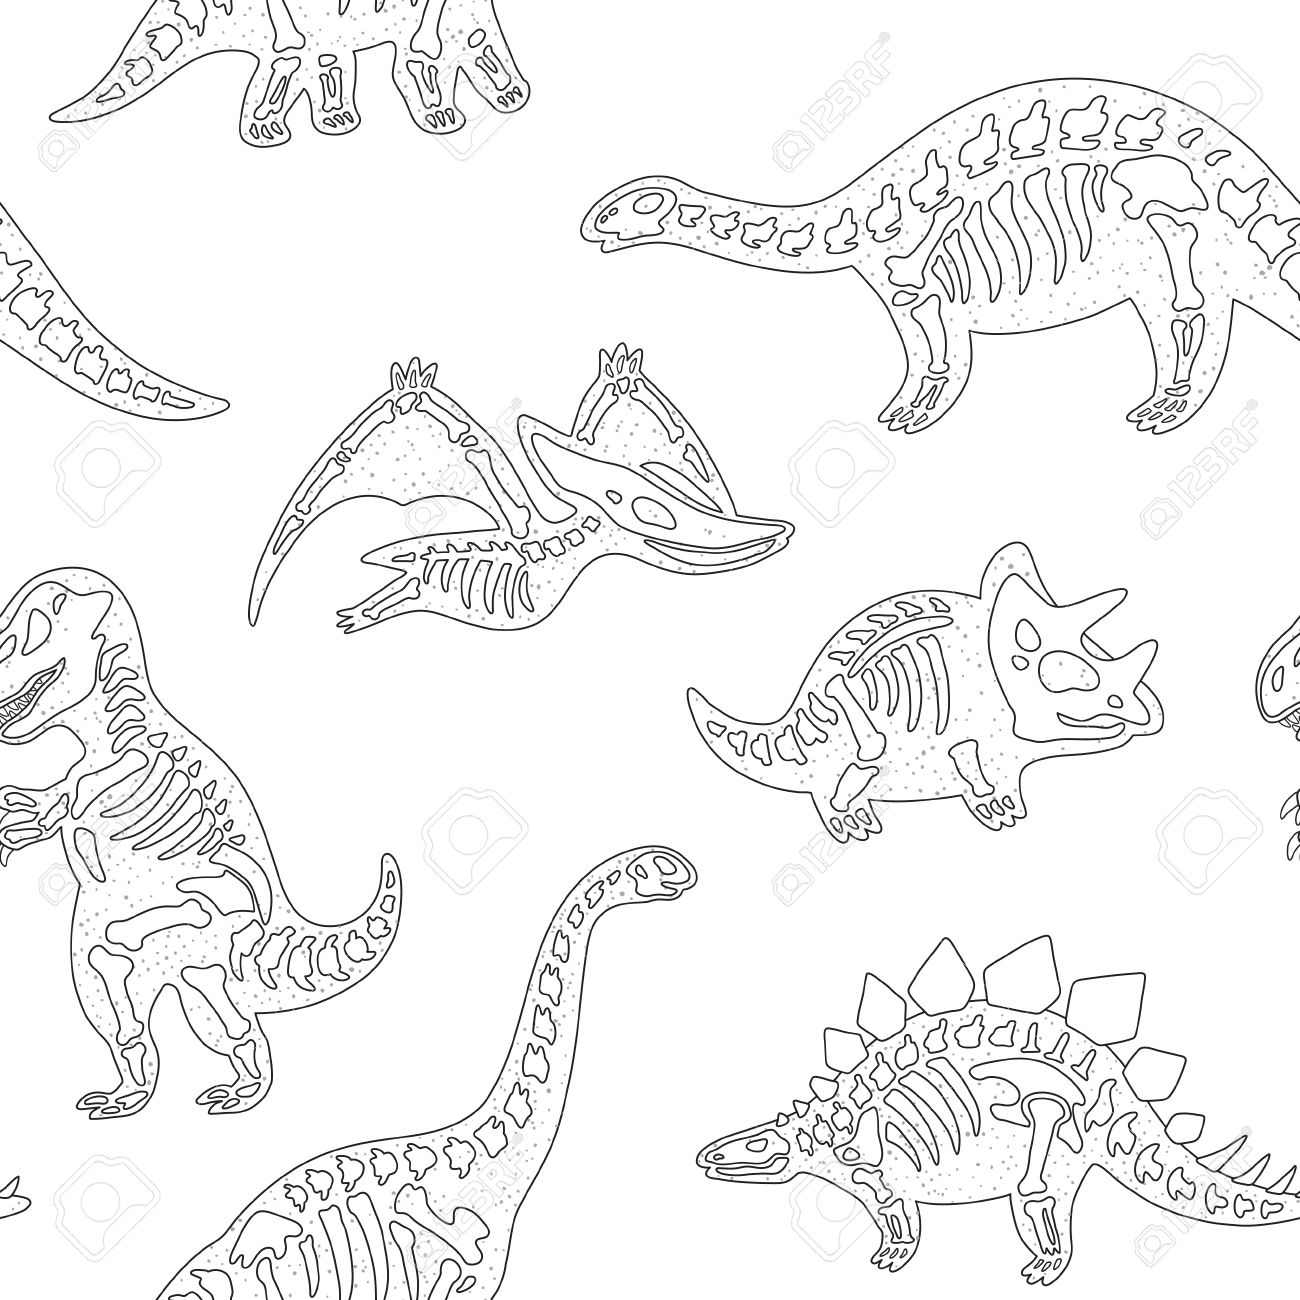 Black And White Hand Drawn Fossil Dinosaurs Seamless Pattern Royalty ...